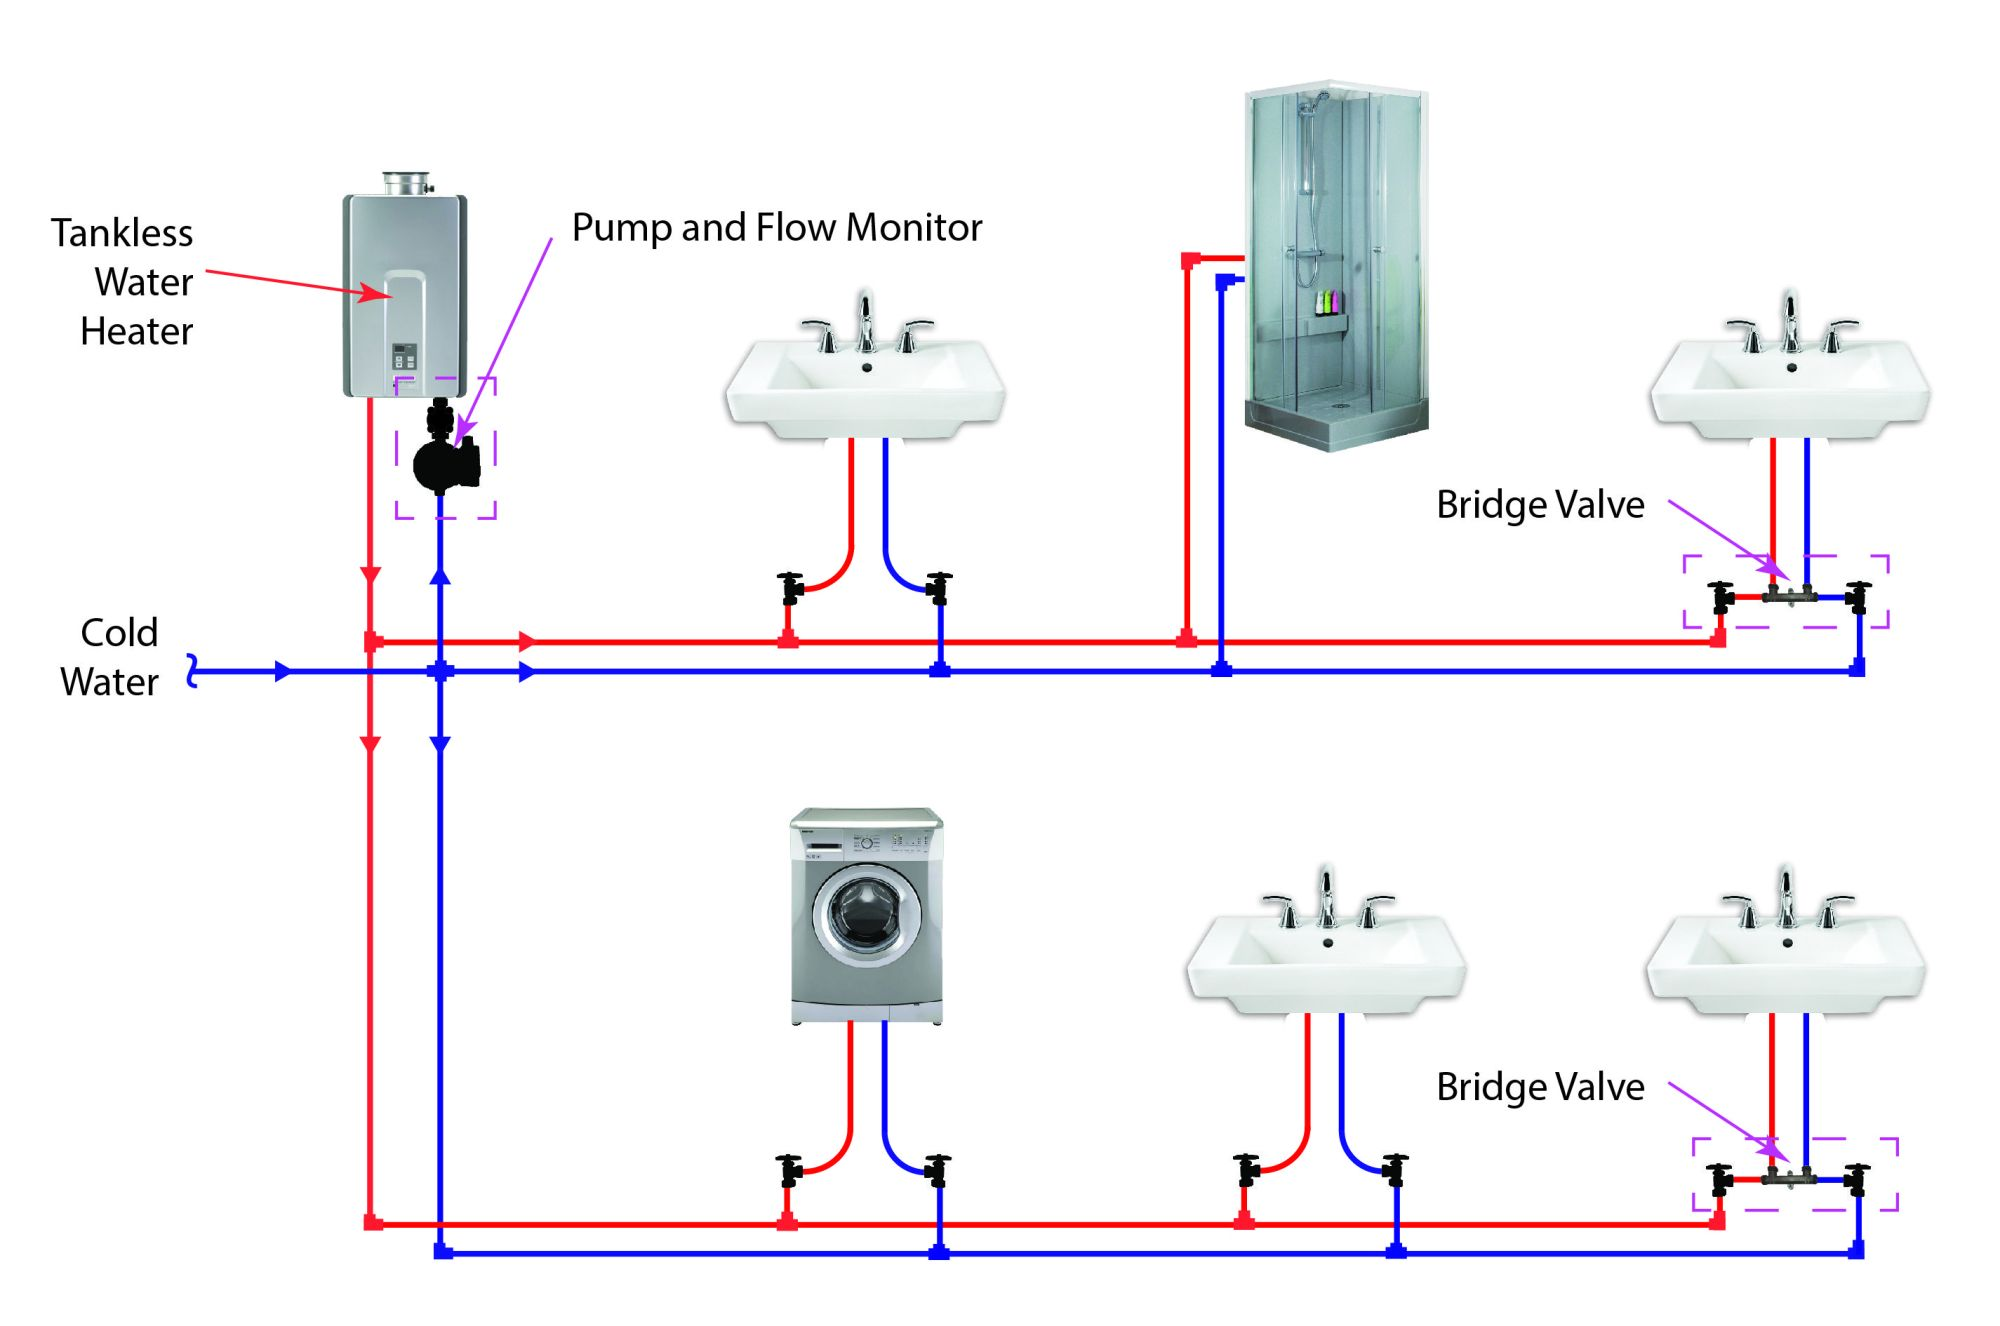 hight resolution of tankless water heater piping diagrams wiring diagrams scematictankless water heater piping diagrams wiring diagram schematics electric